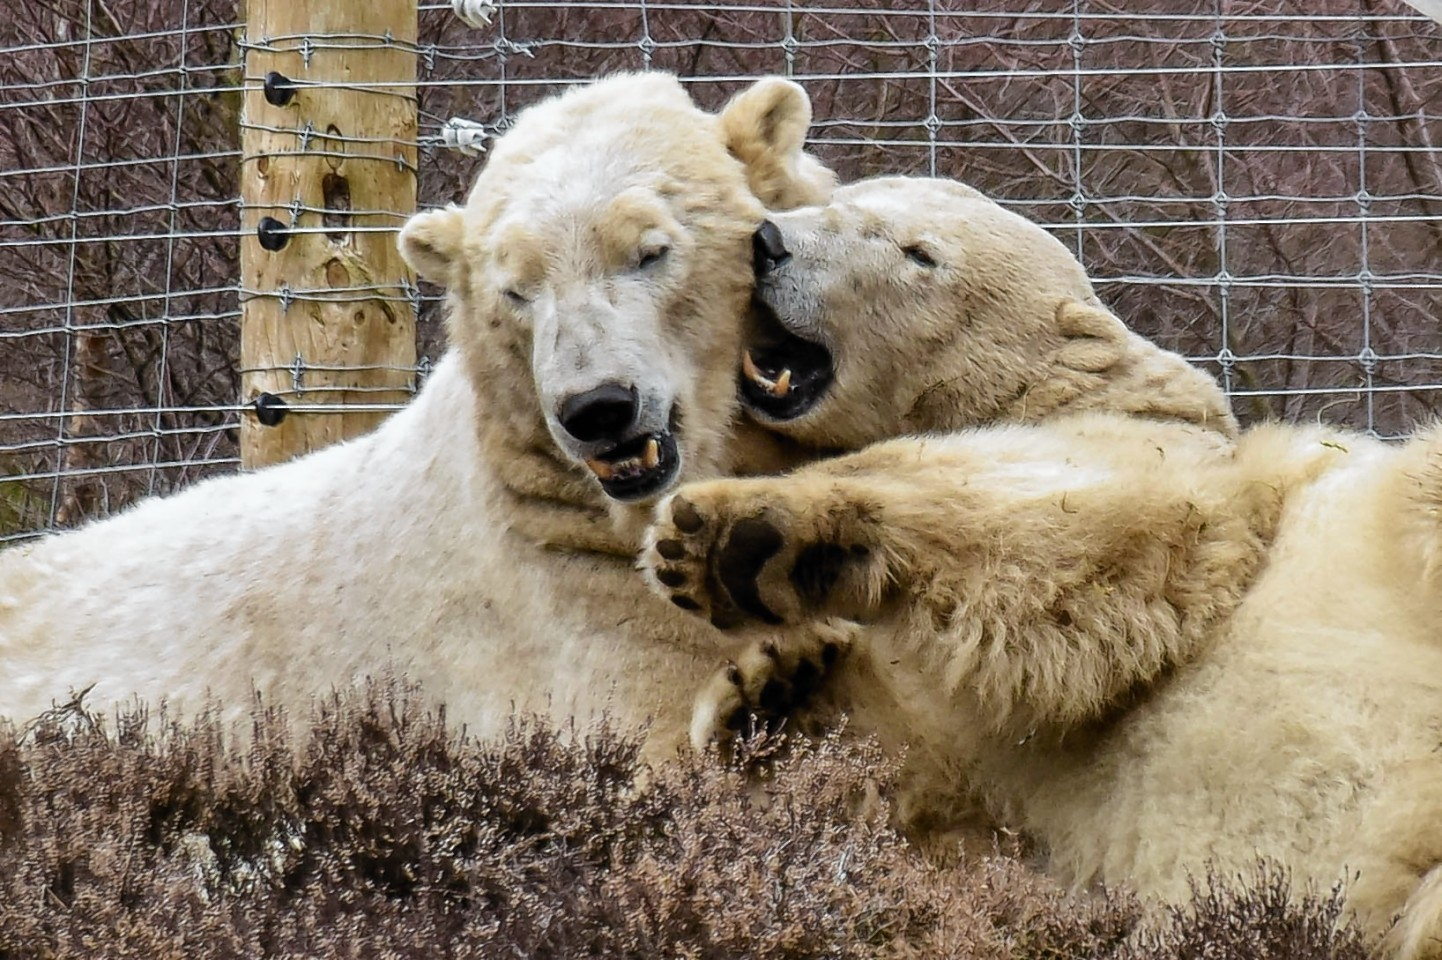 Polar Bears Arktos and Victoria in their enclosure at the Highland Wildlife Park